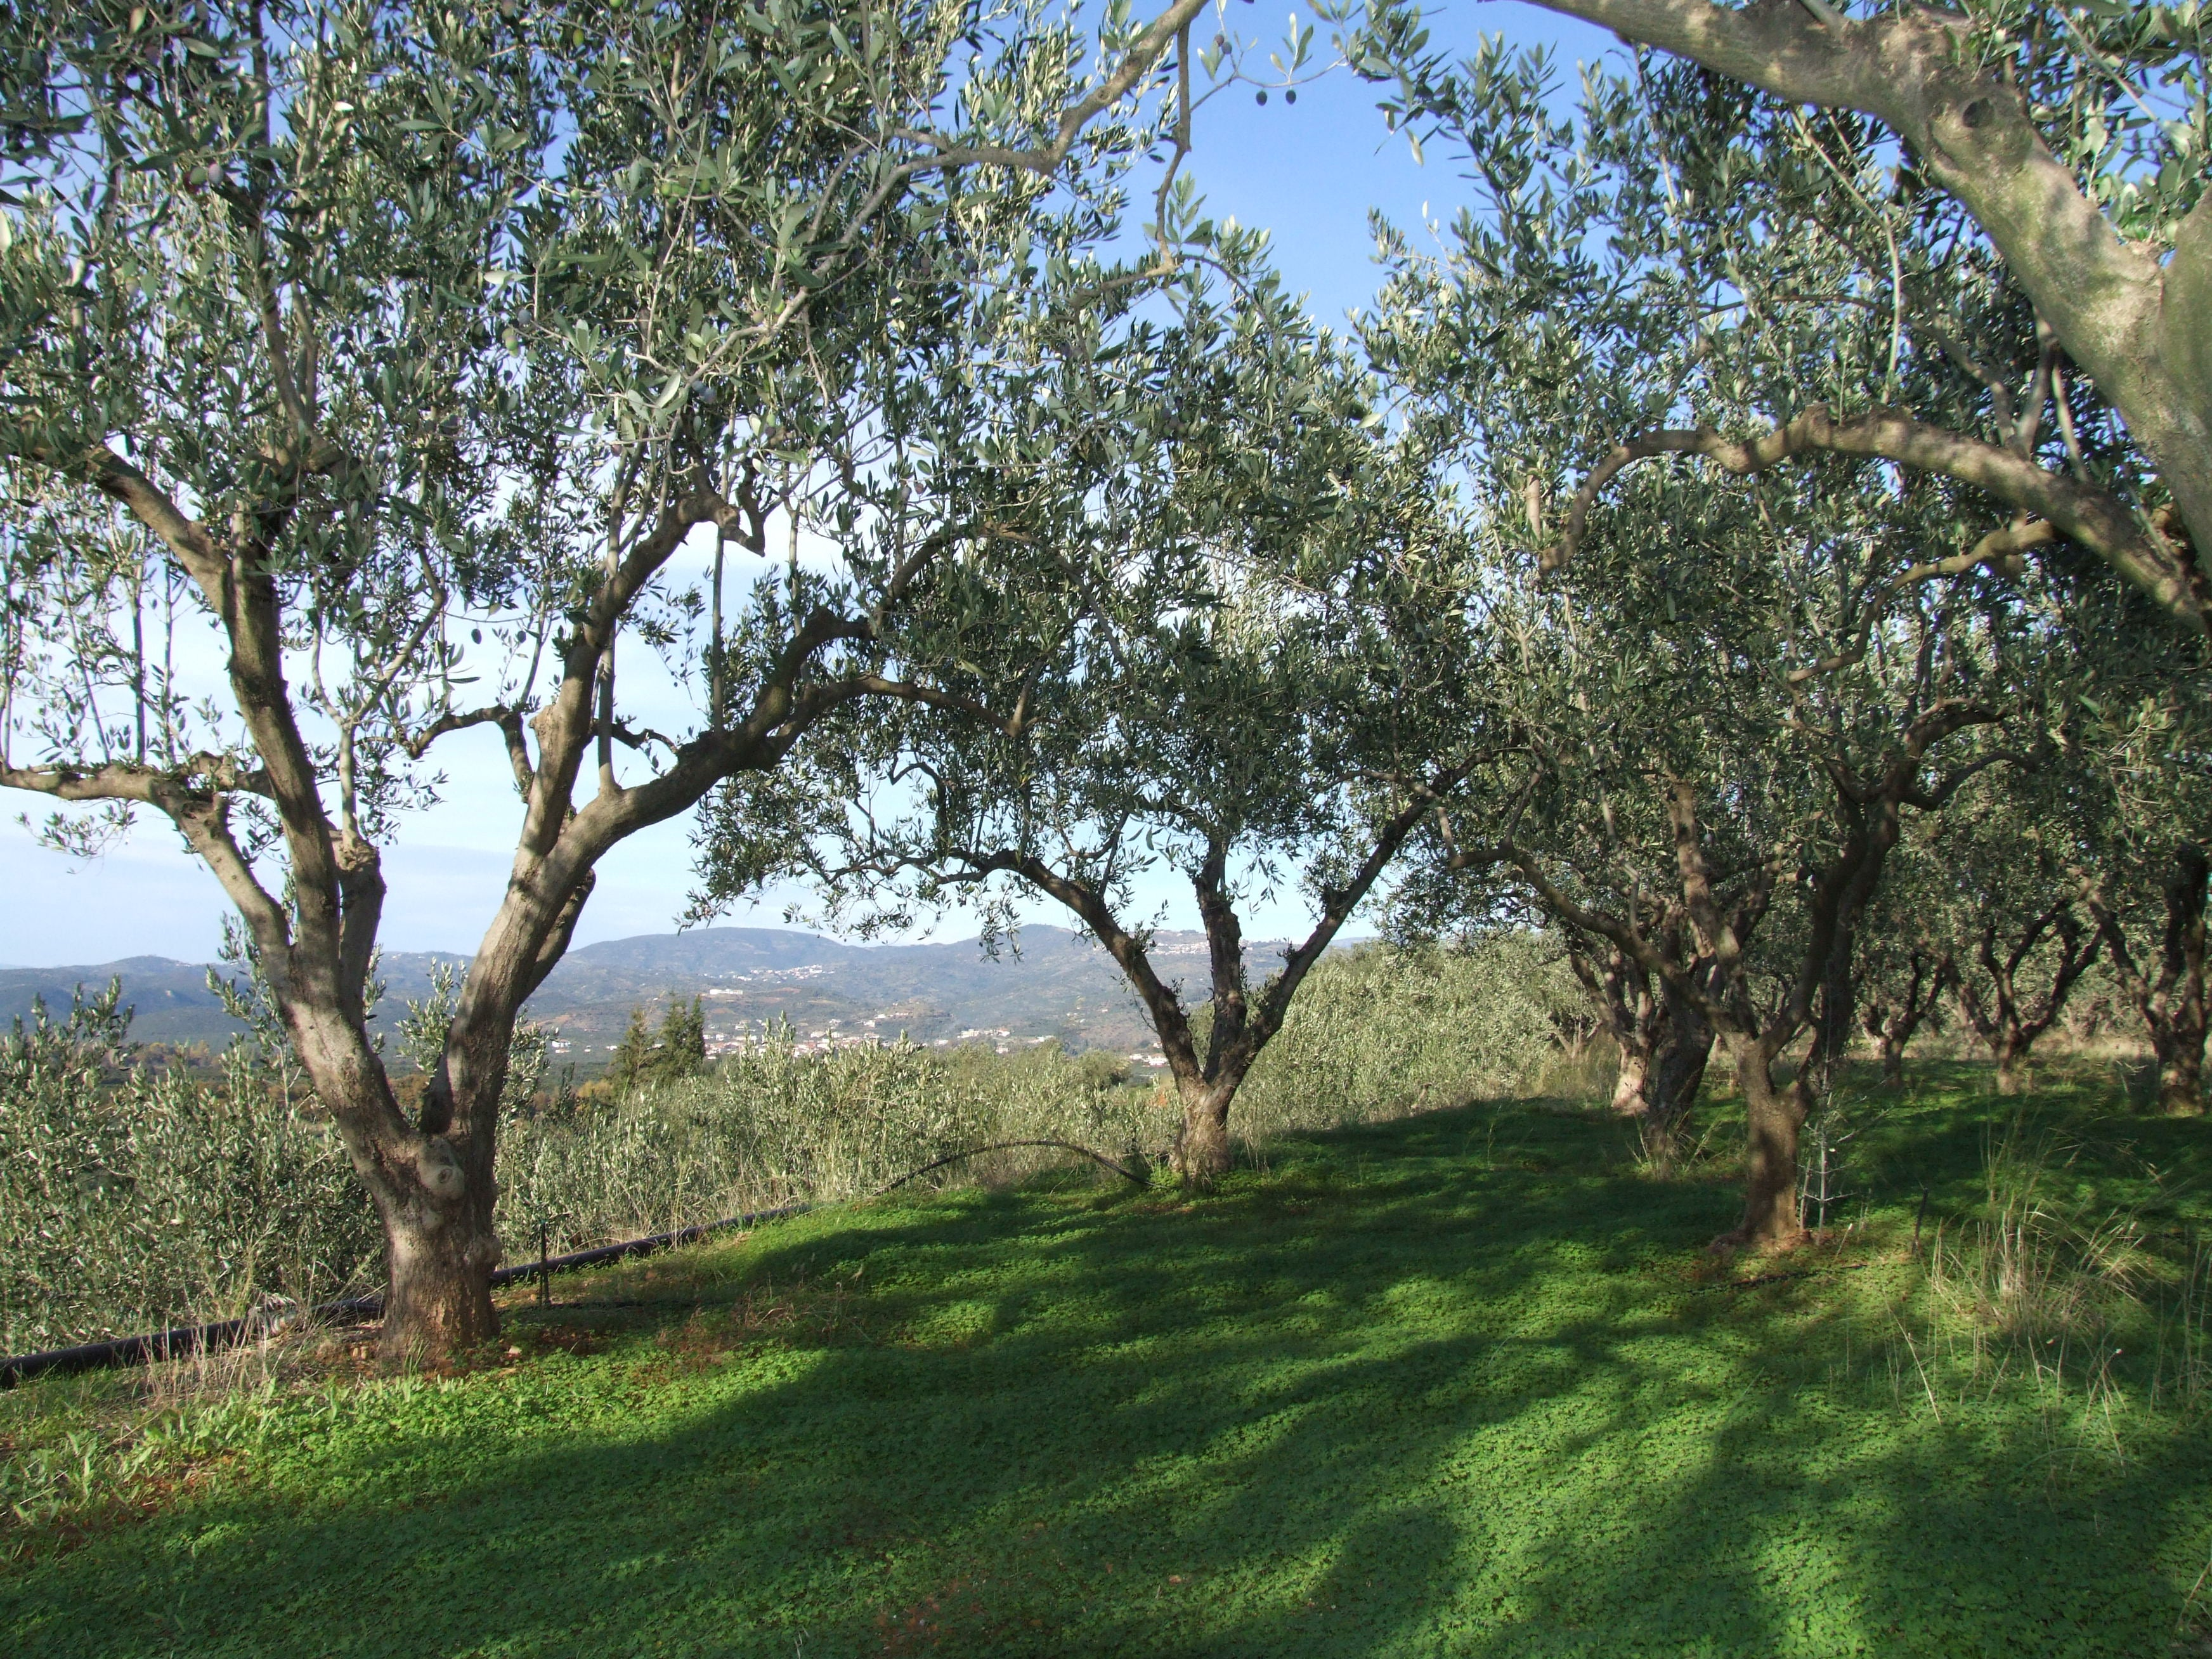 the ancient olive grove from where this twig came from